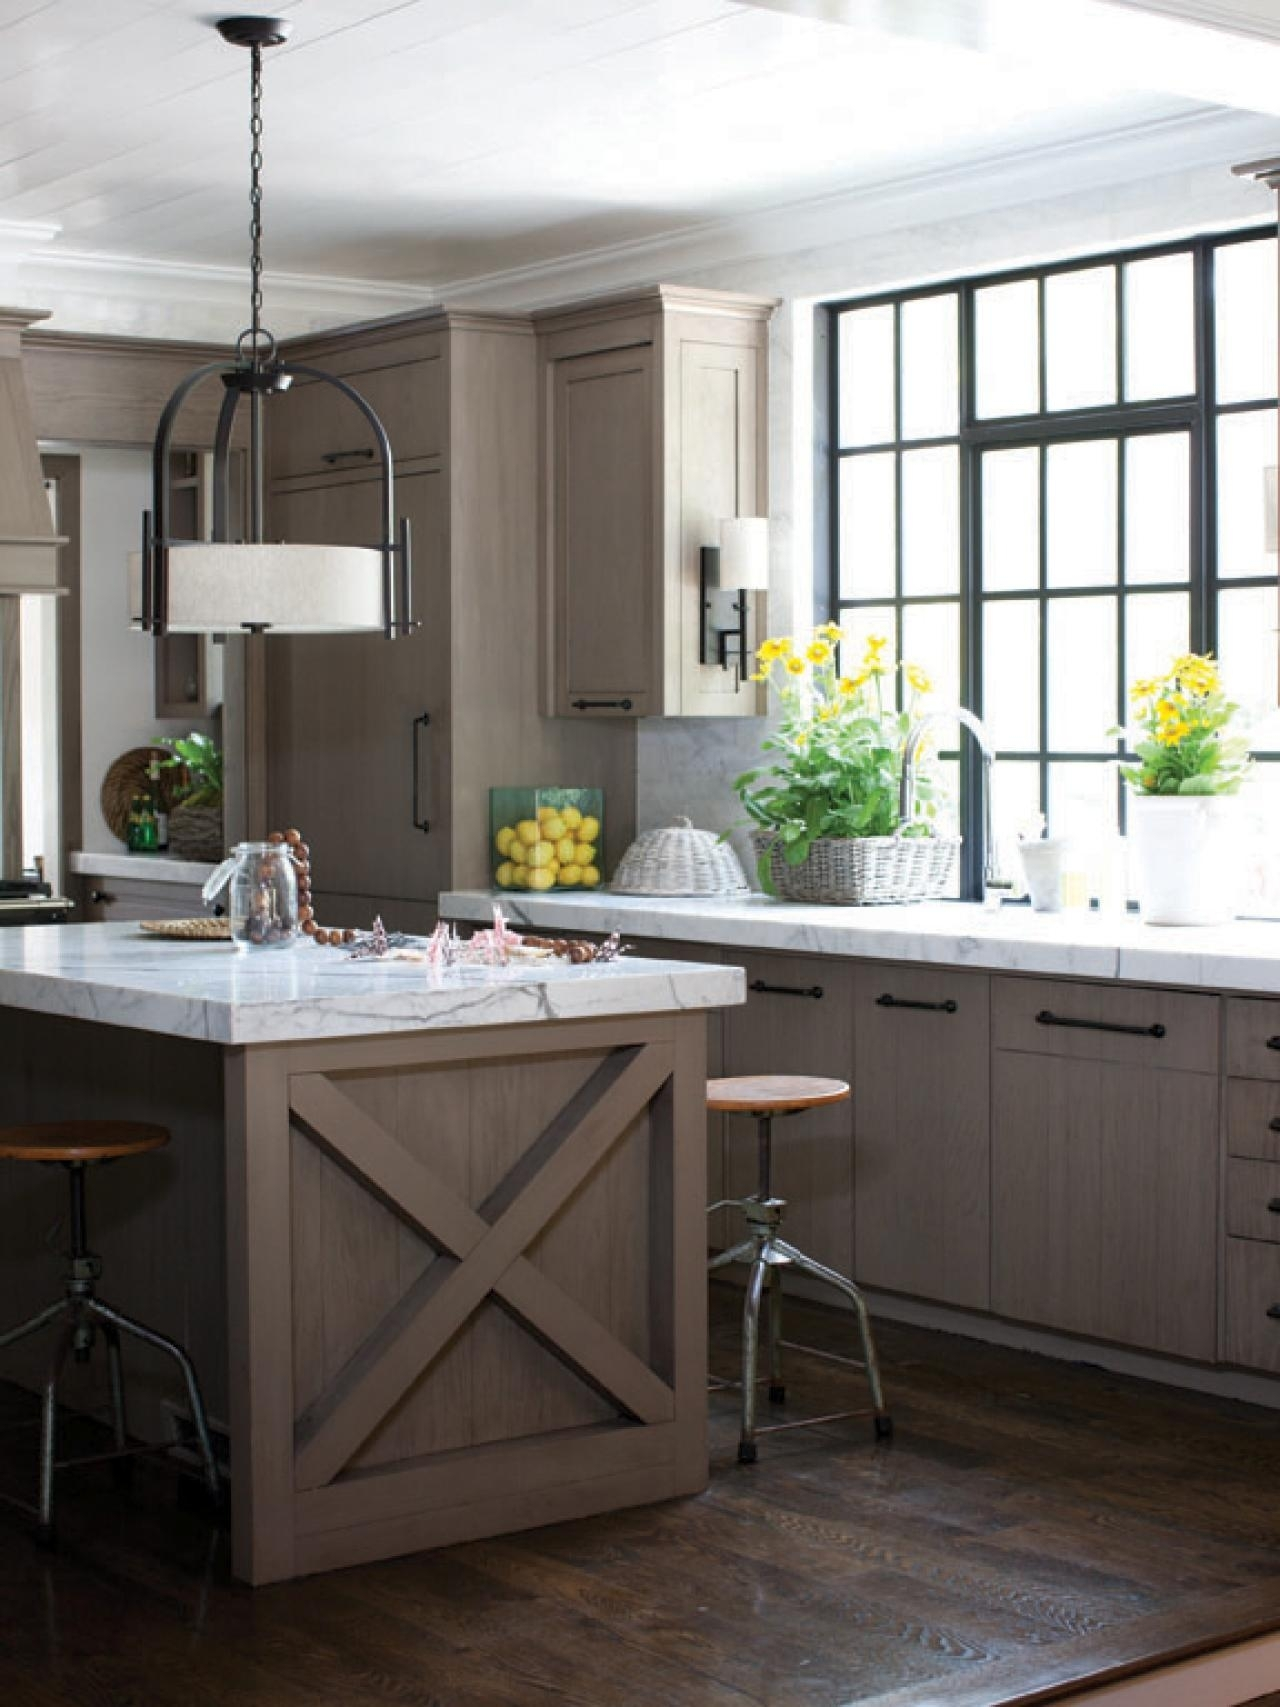 10 Attractive Kitchen Island Lighting Ideas Pictures %name 2020